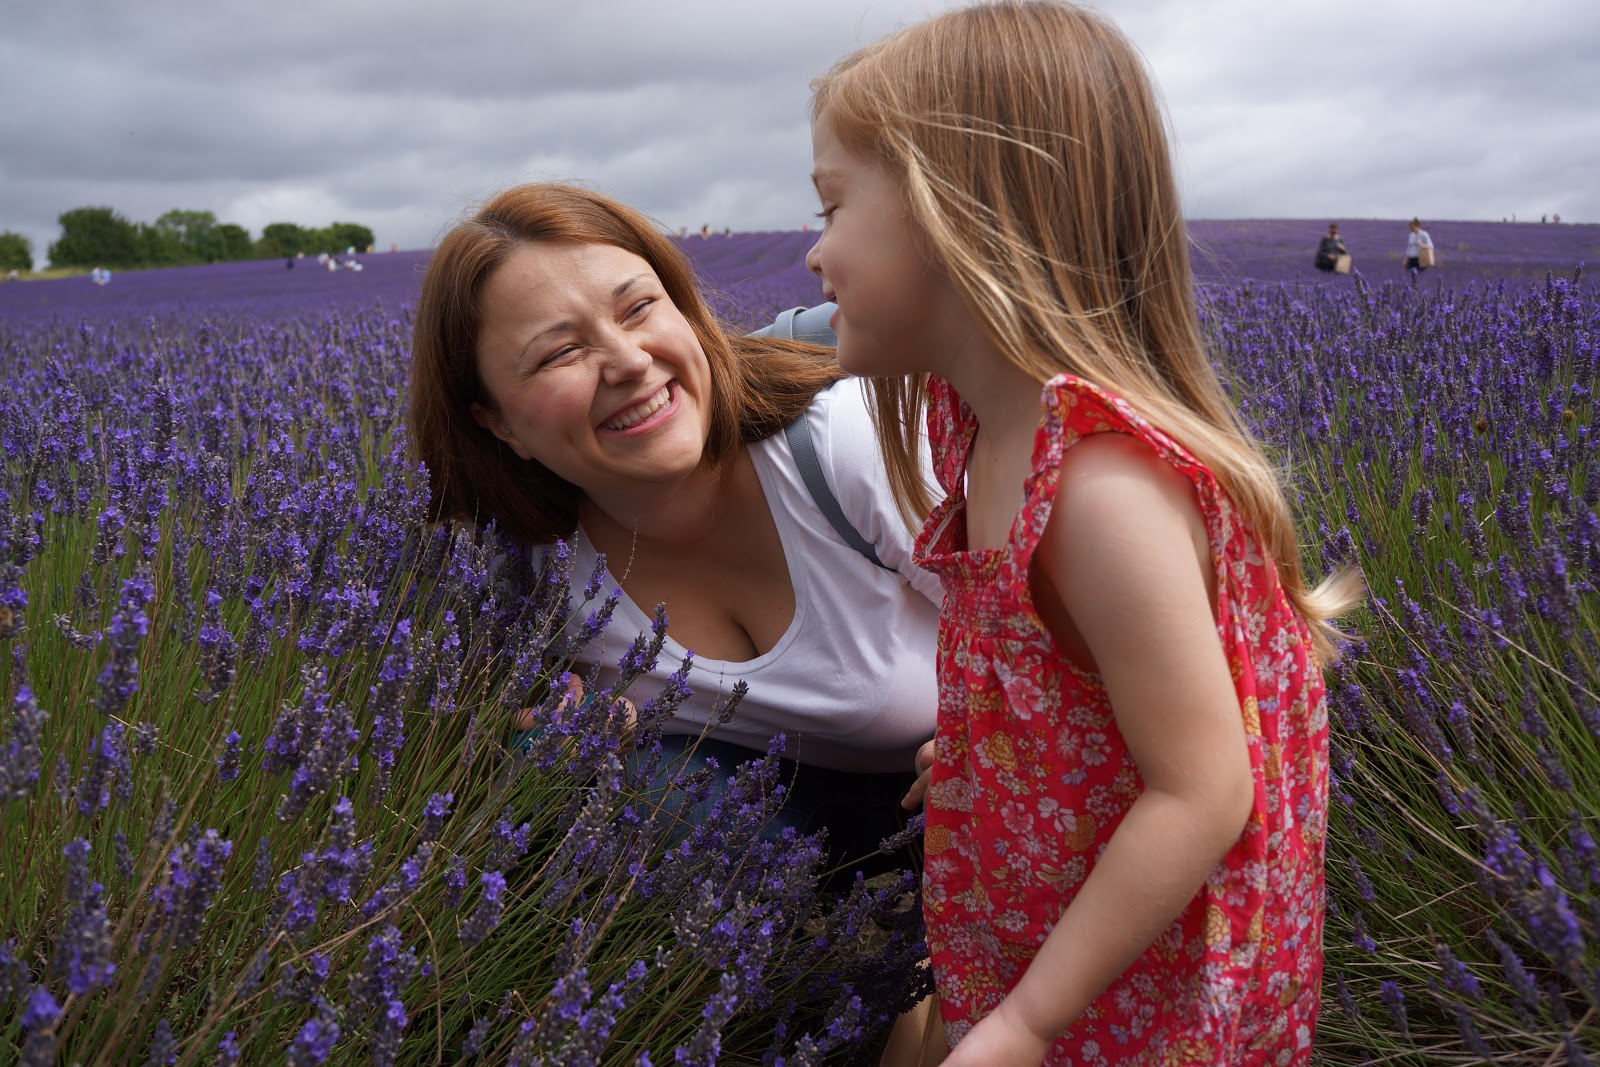 mum and daughter at a lavender field smiling